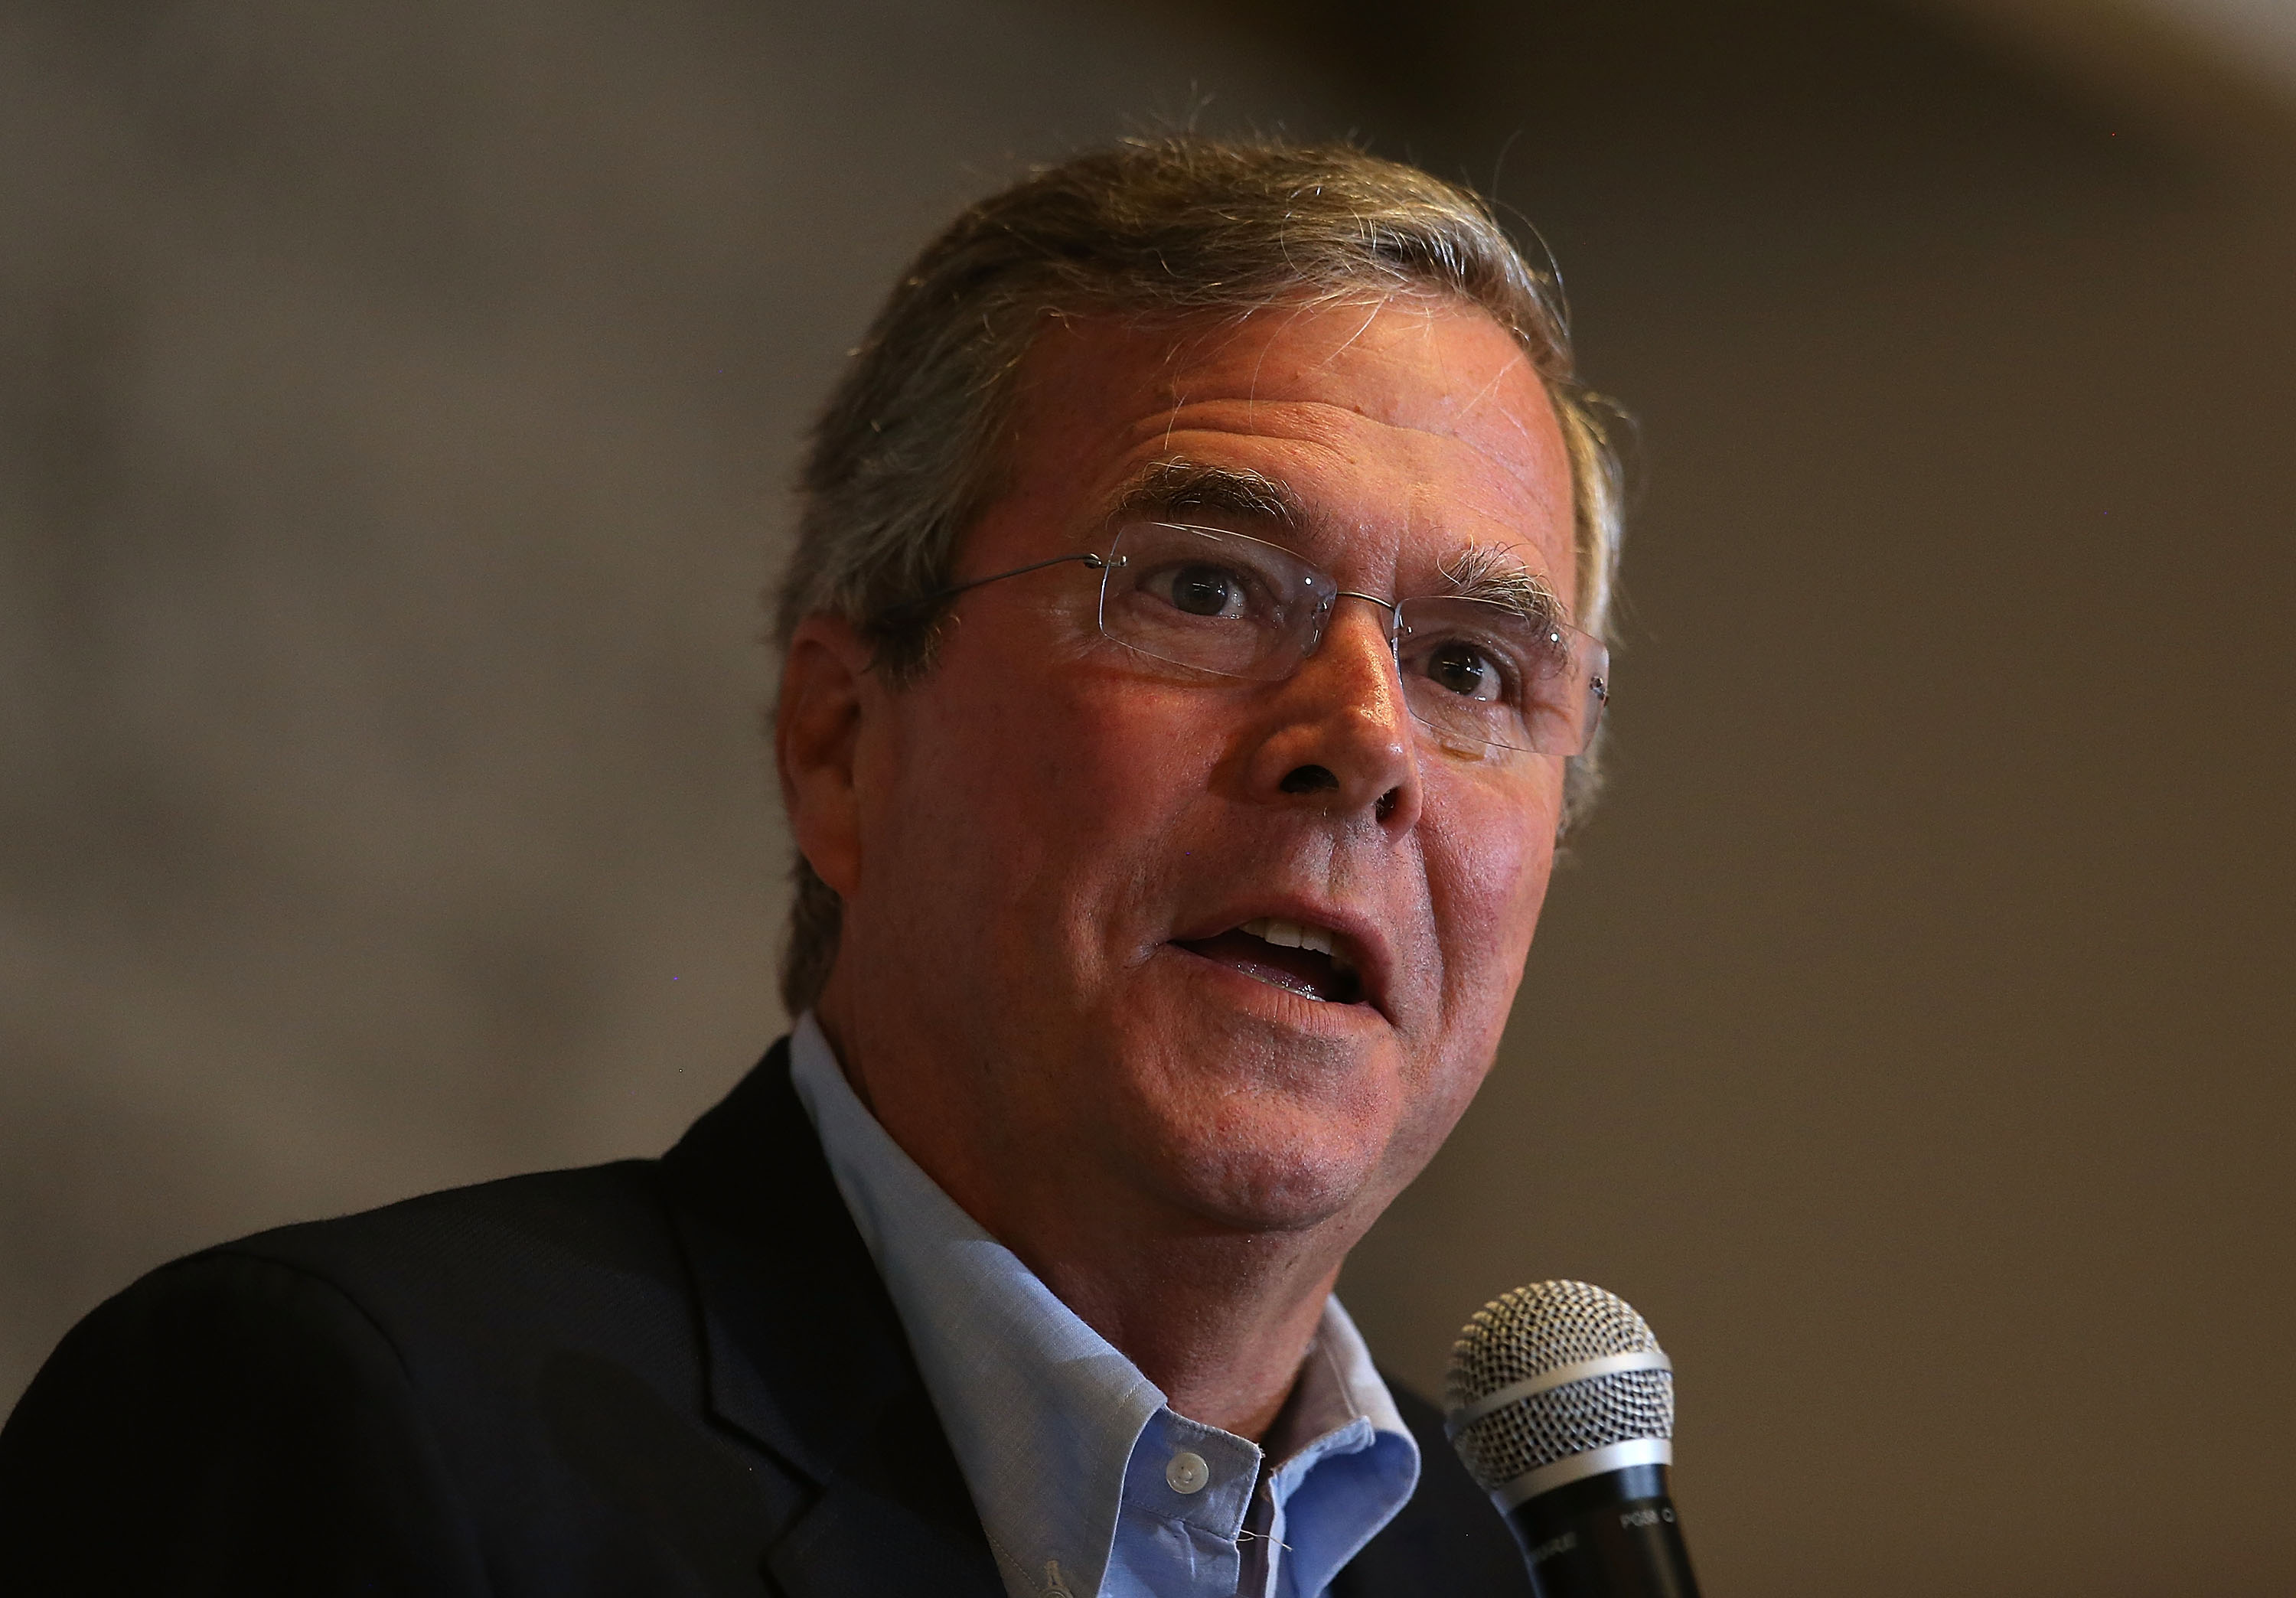 Jeb Bush Quotes Interesting 8 Arrogant Jeb Bush Quotes That Completely Negate His Comment